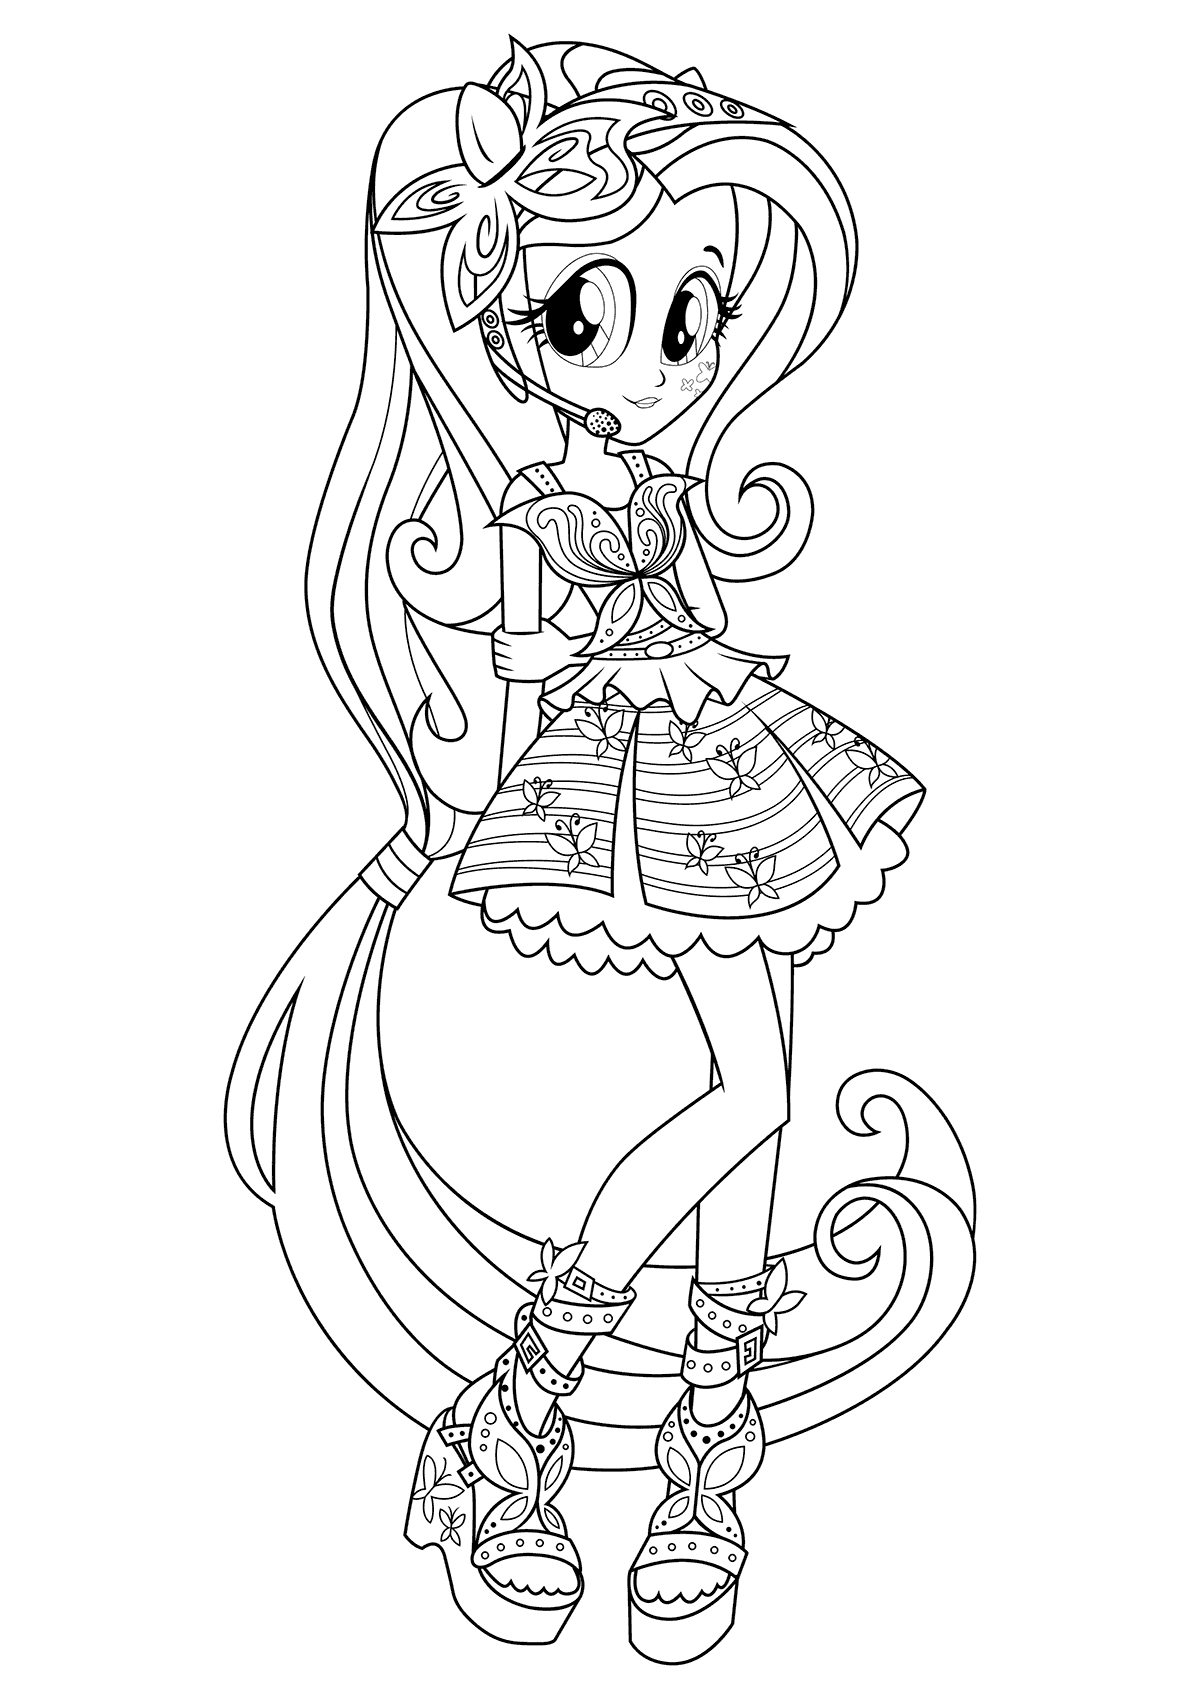 Mlp Equestria Girls Coloring Pages At Getcolorings